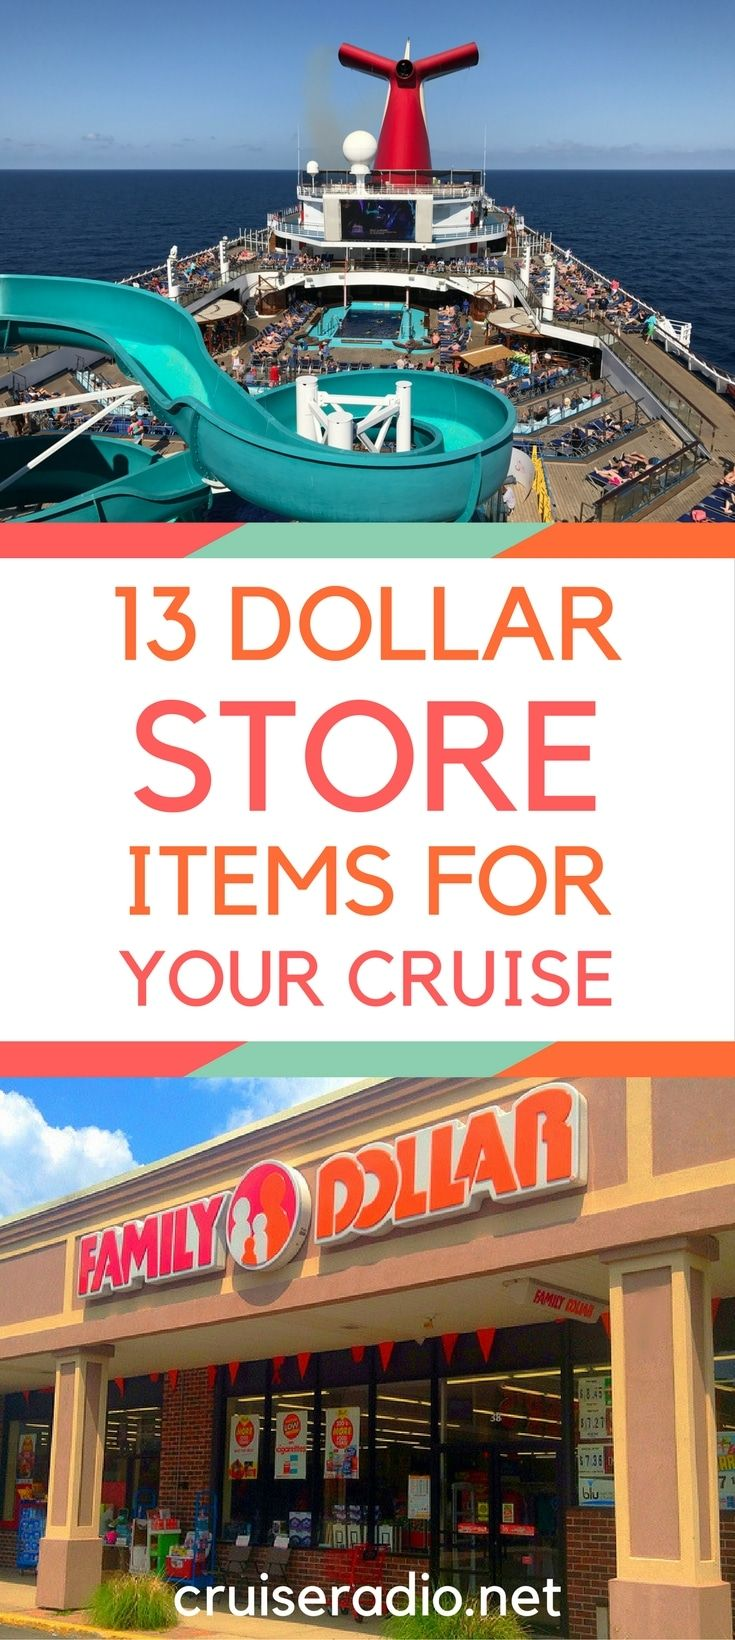 13 Dollar Store Items for Your Cruise